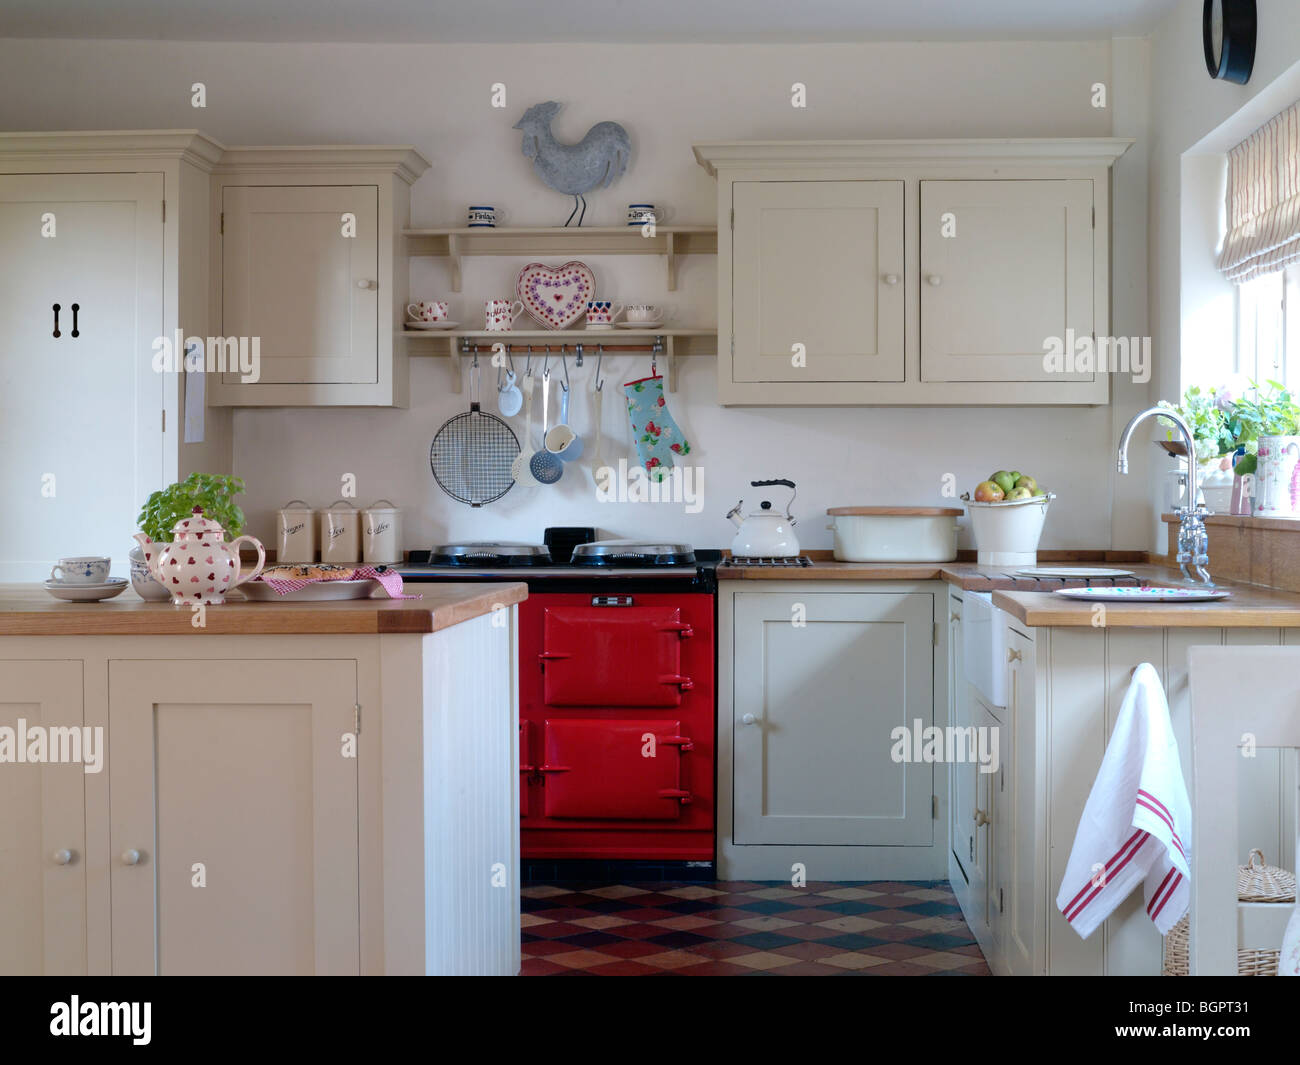 sailors country kitchen butler sink stock photos amp butler sink stock images alamy 2089